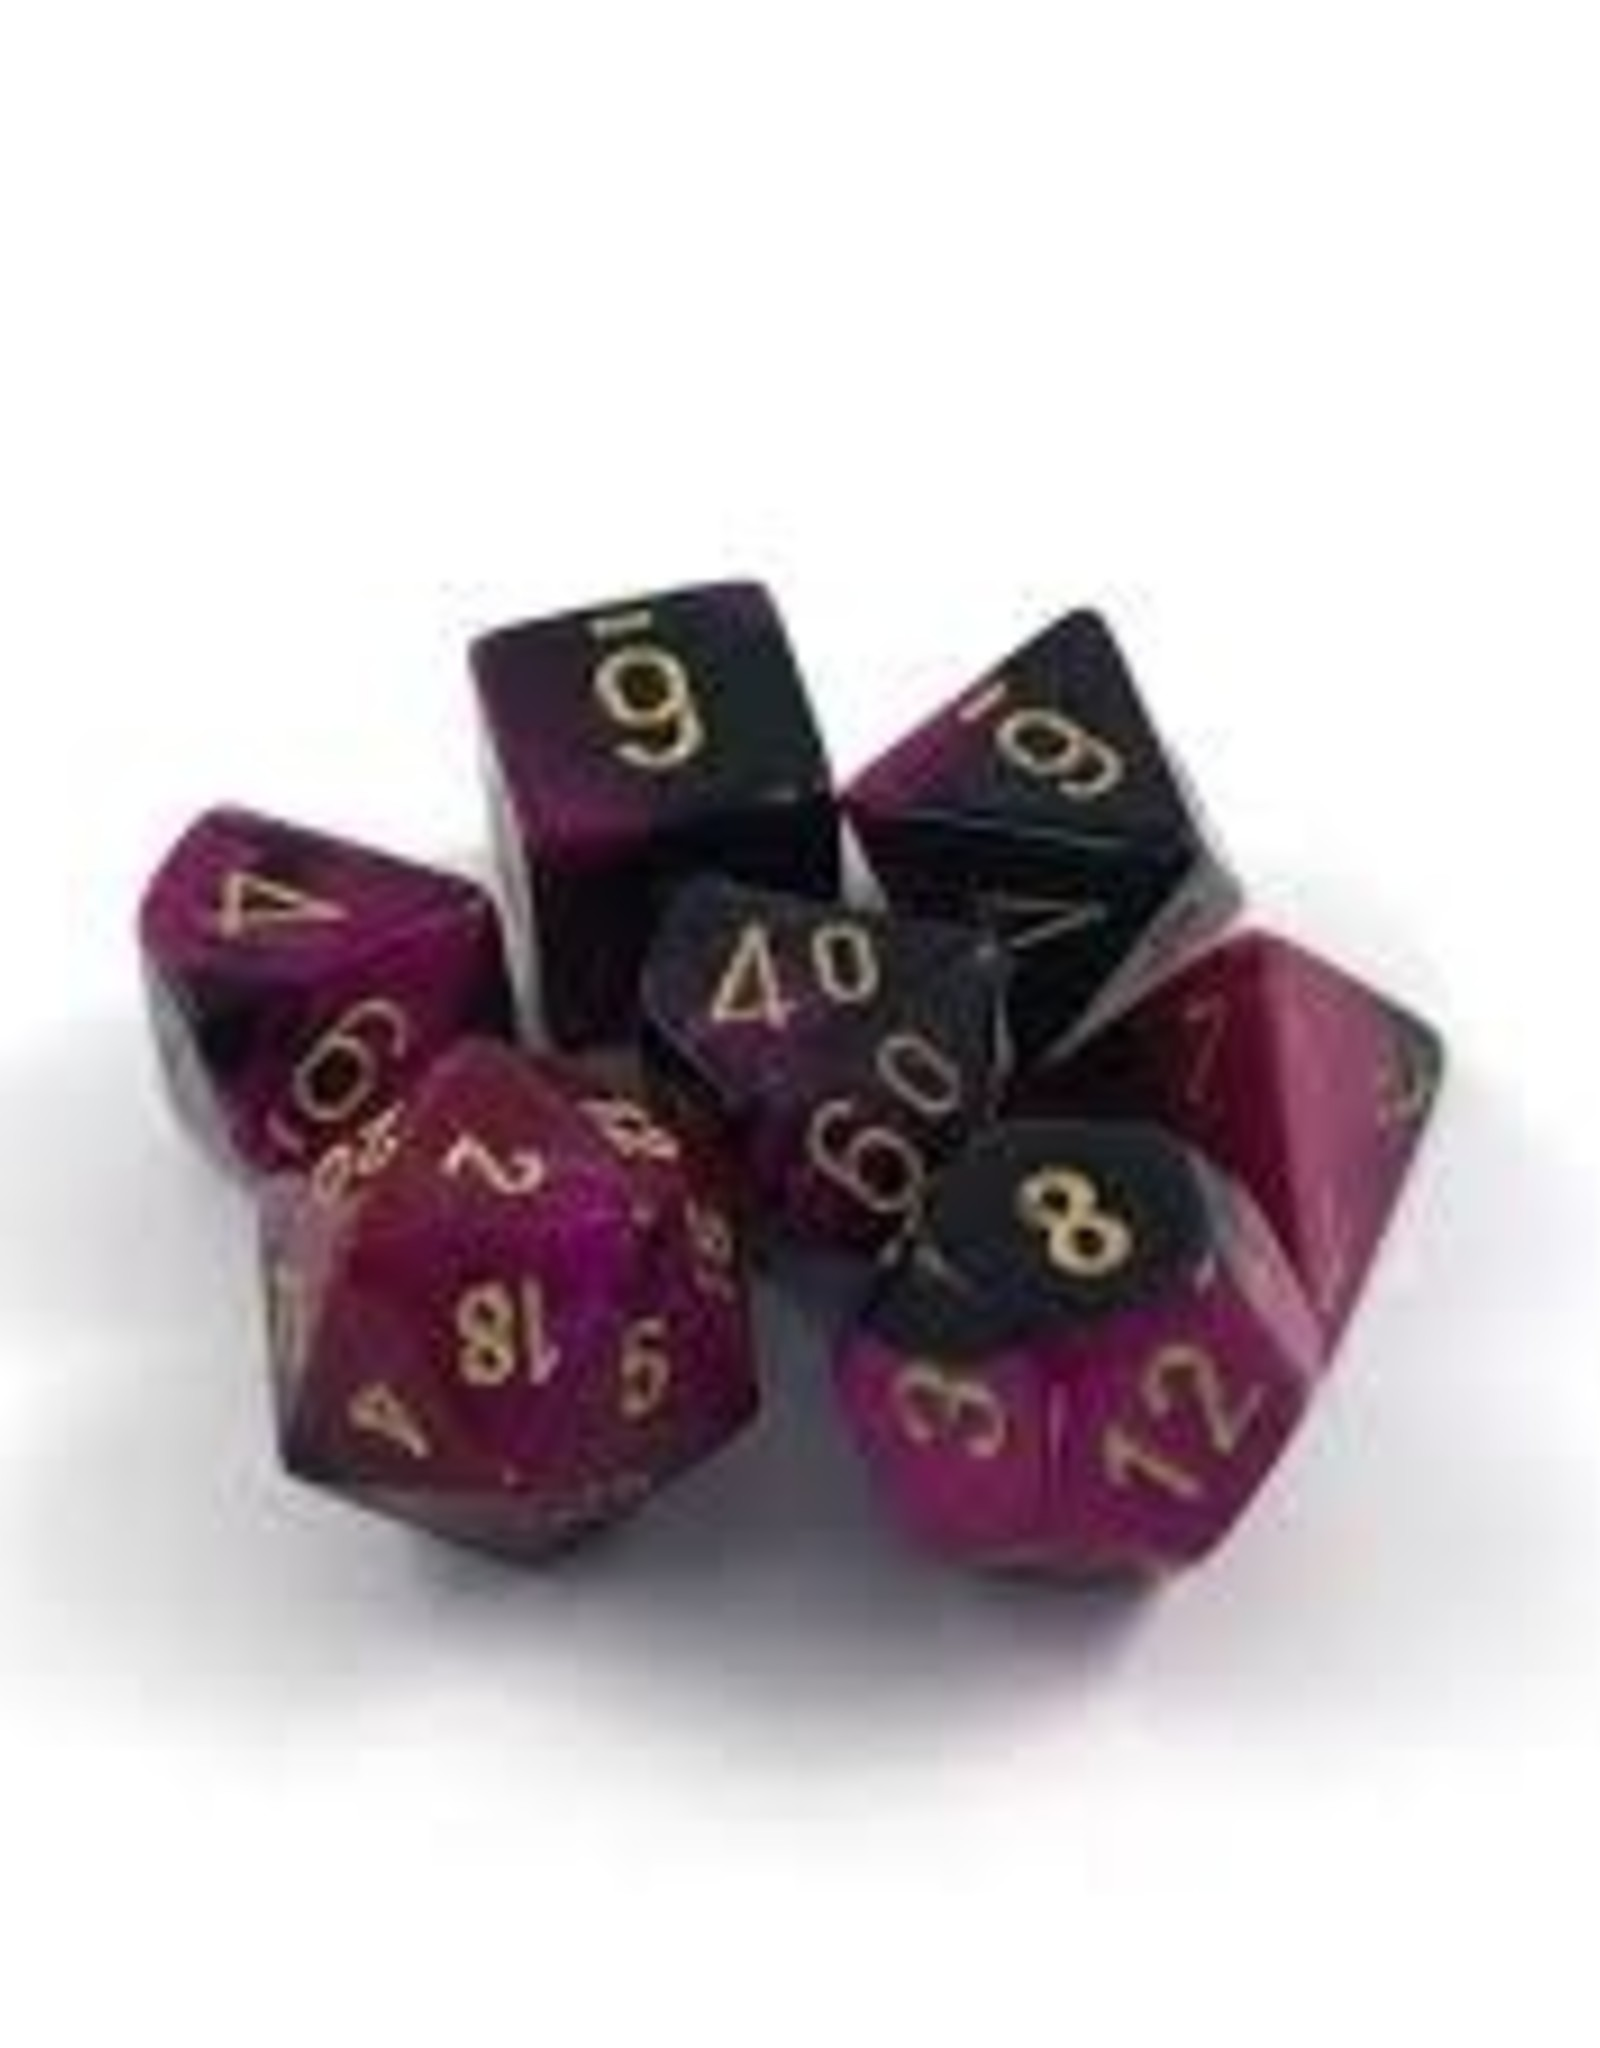 Chessex Gemini Set Of 7 Dice - Black & Purple With Gold Numbering